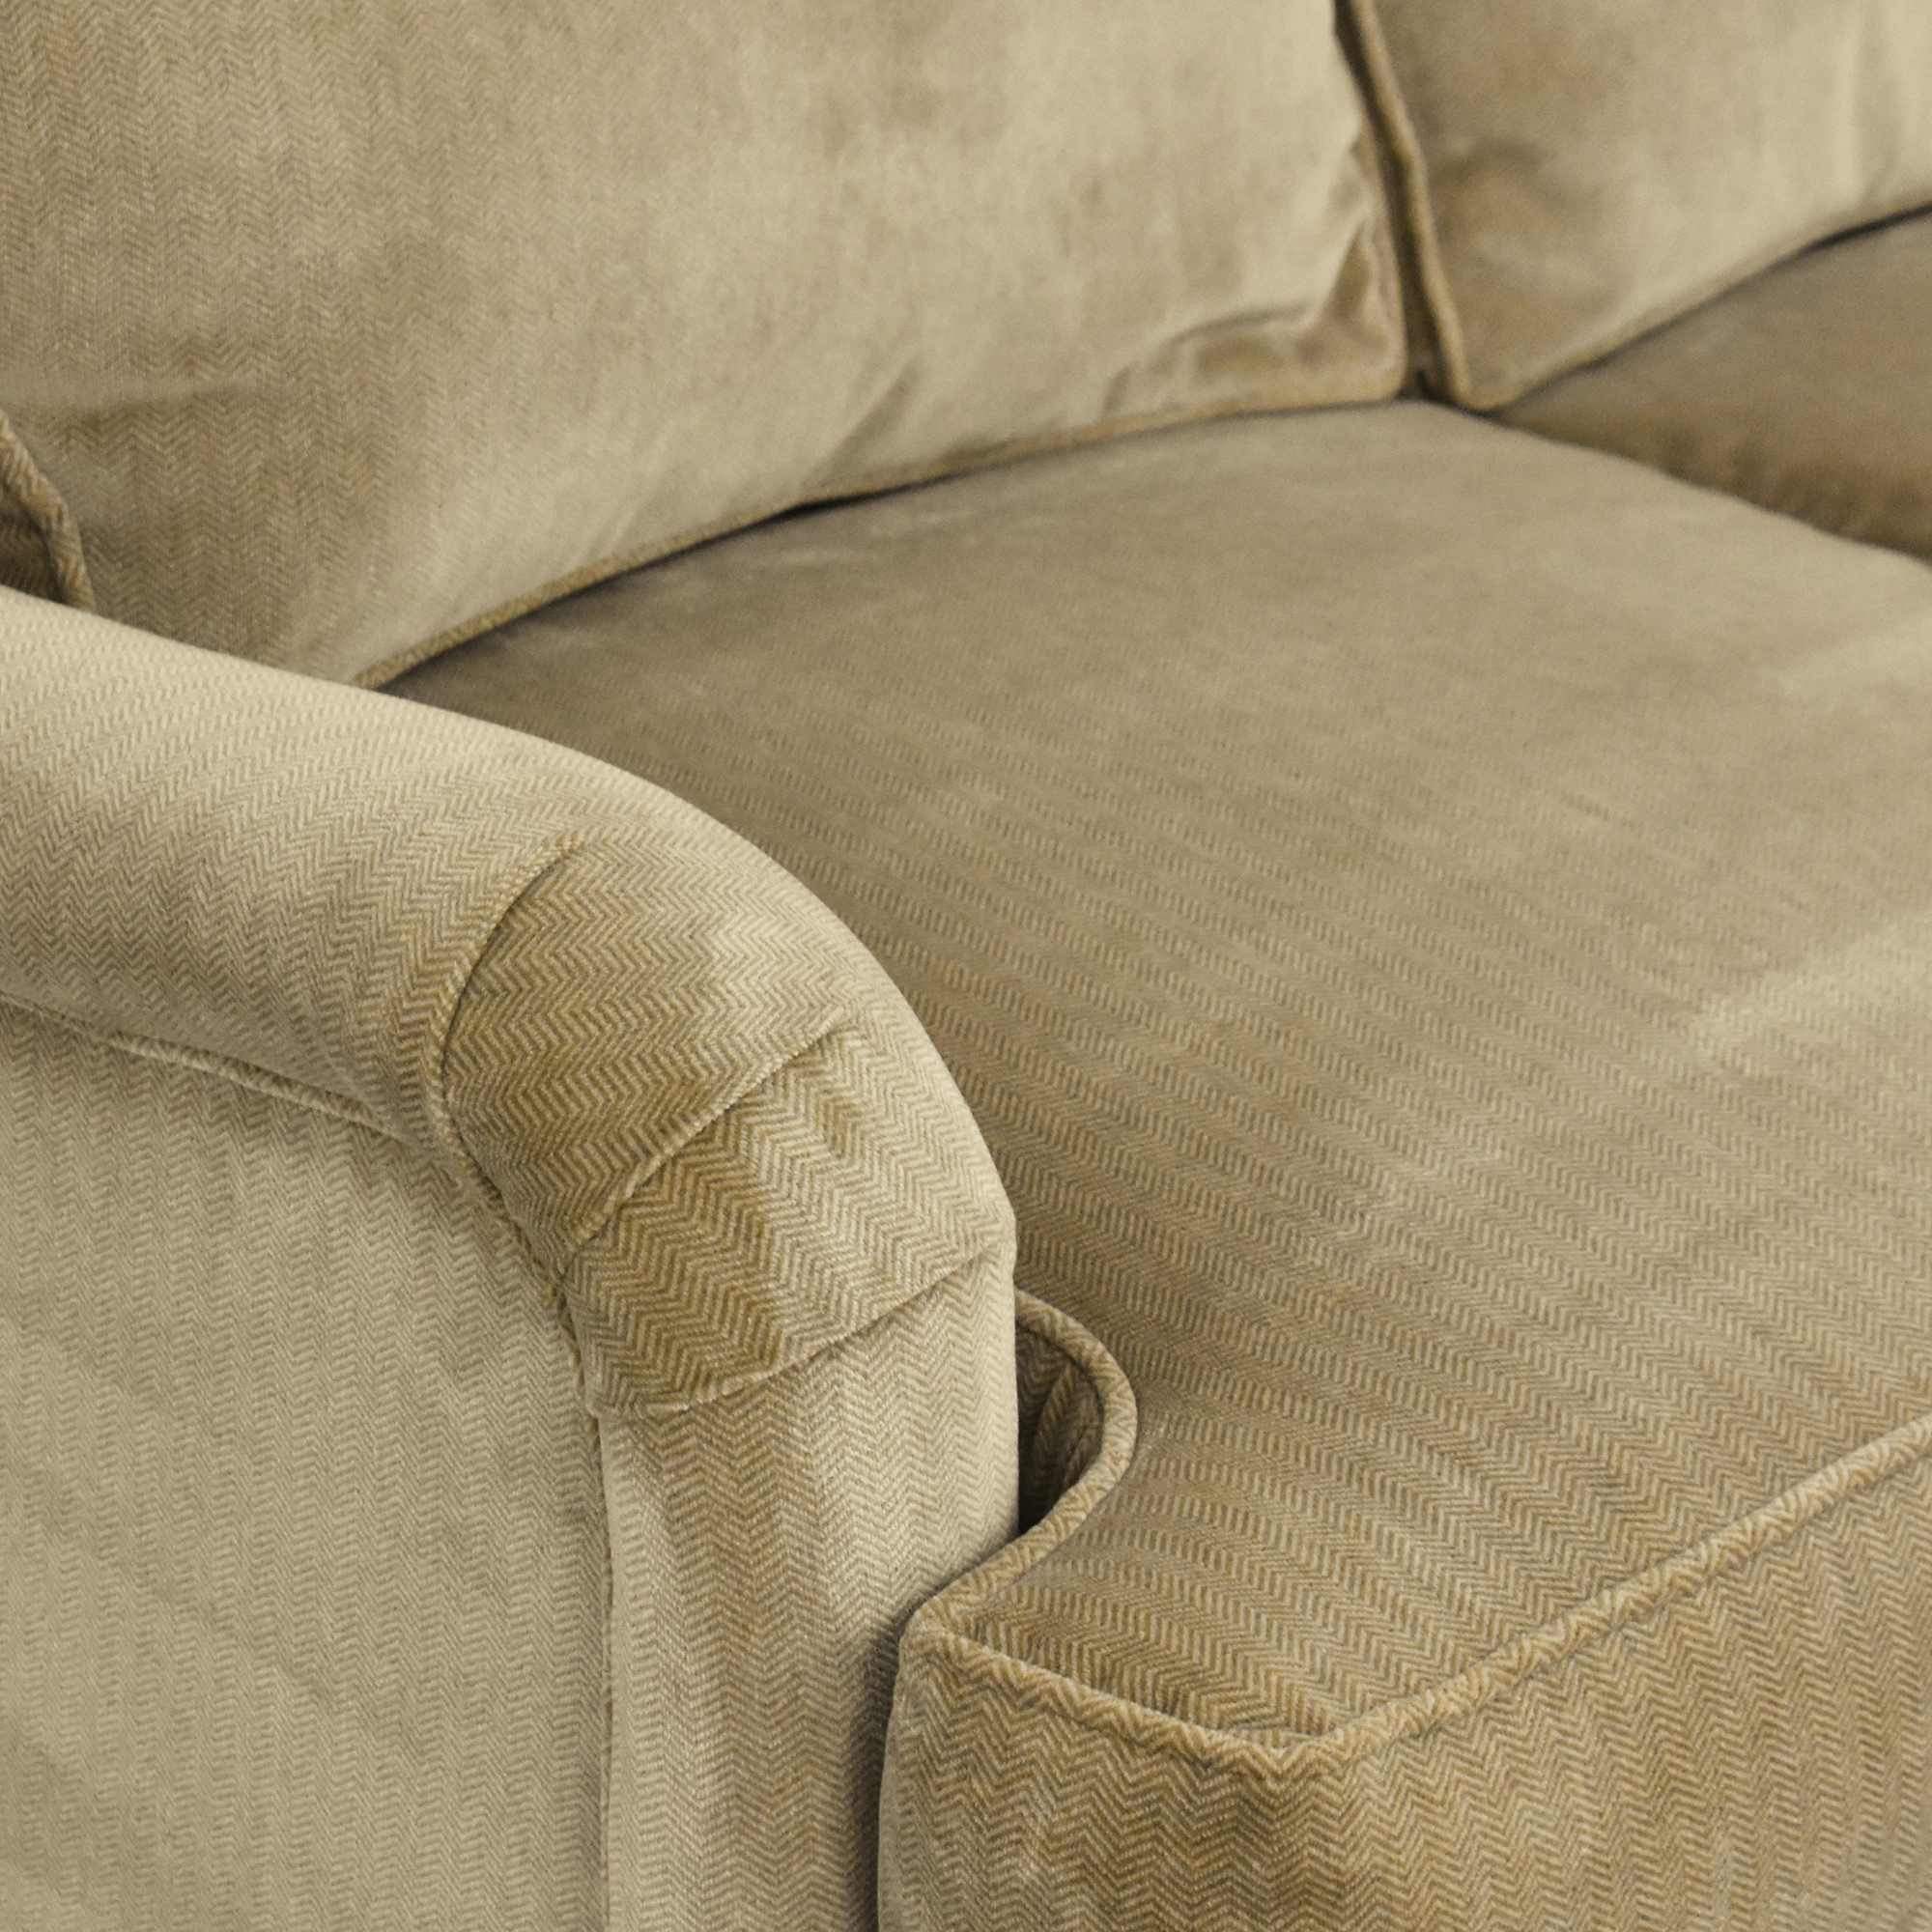 Lee Industries Lee Industries Three Cushion Sofa with Casters ct